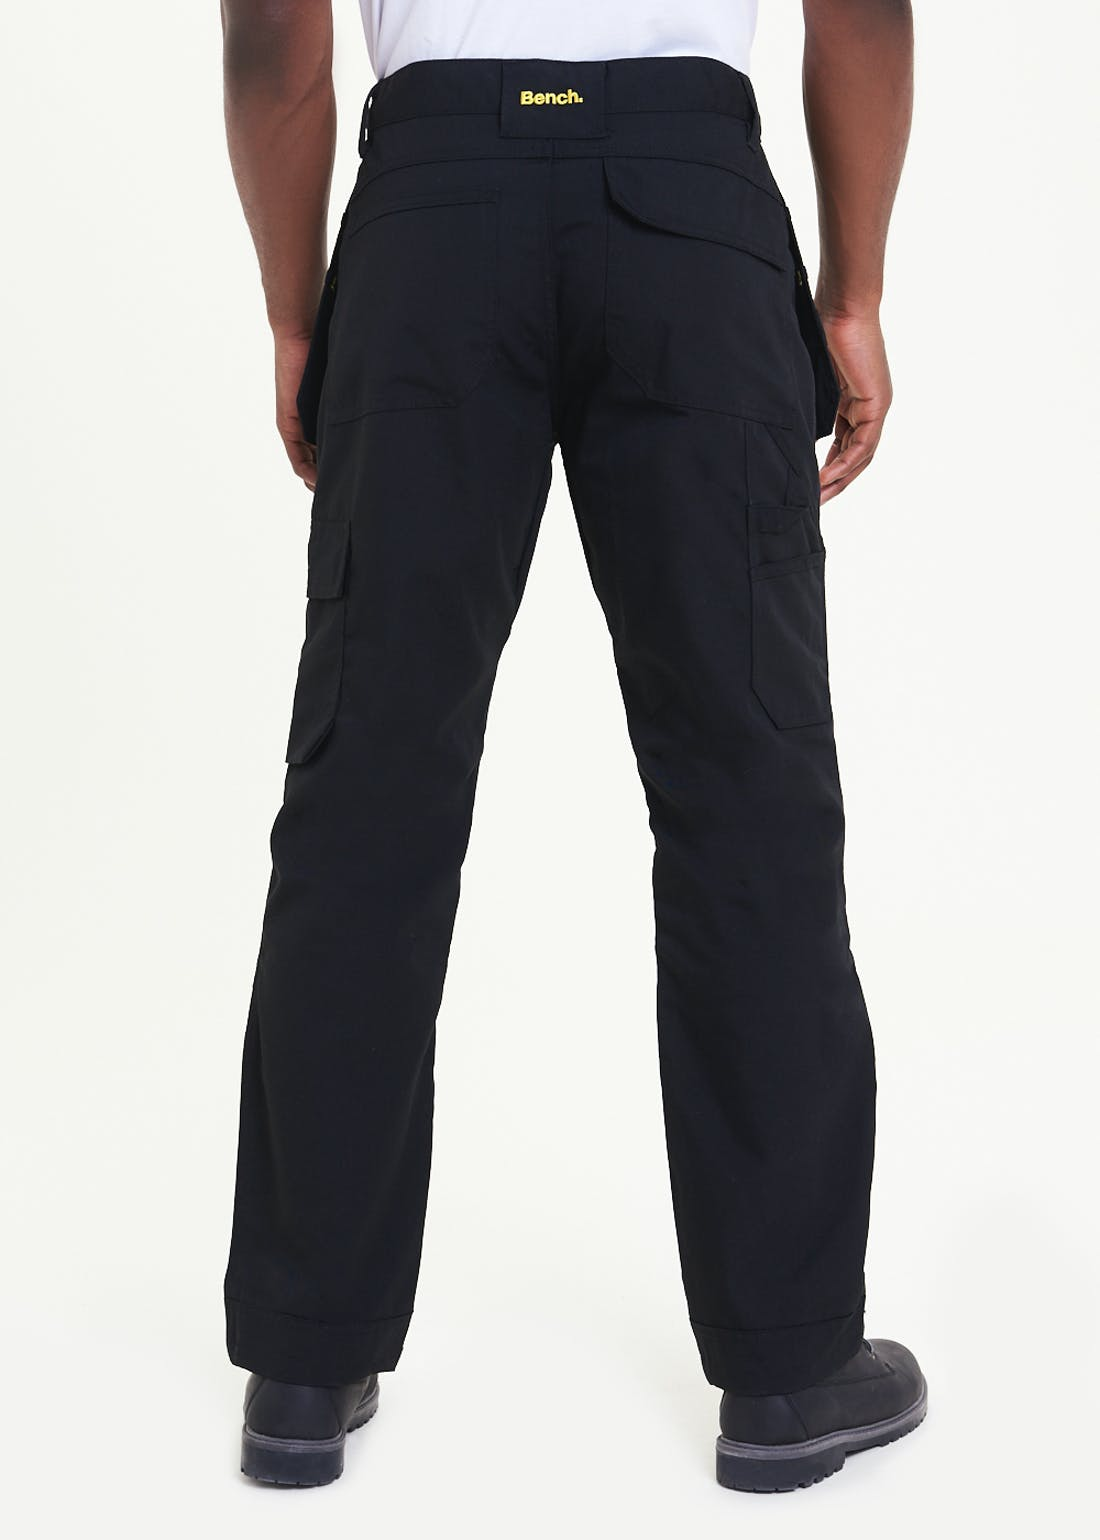 Bench Workwear Holster Pocket Trousers